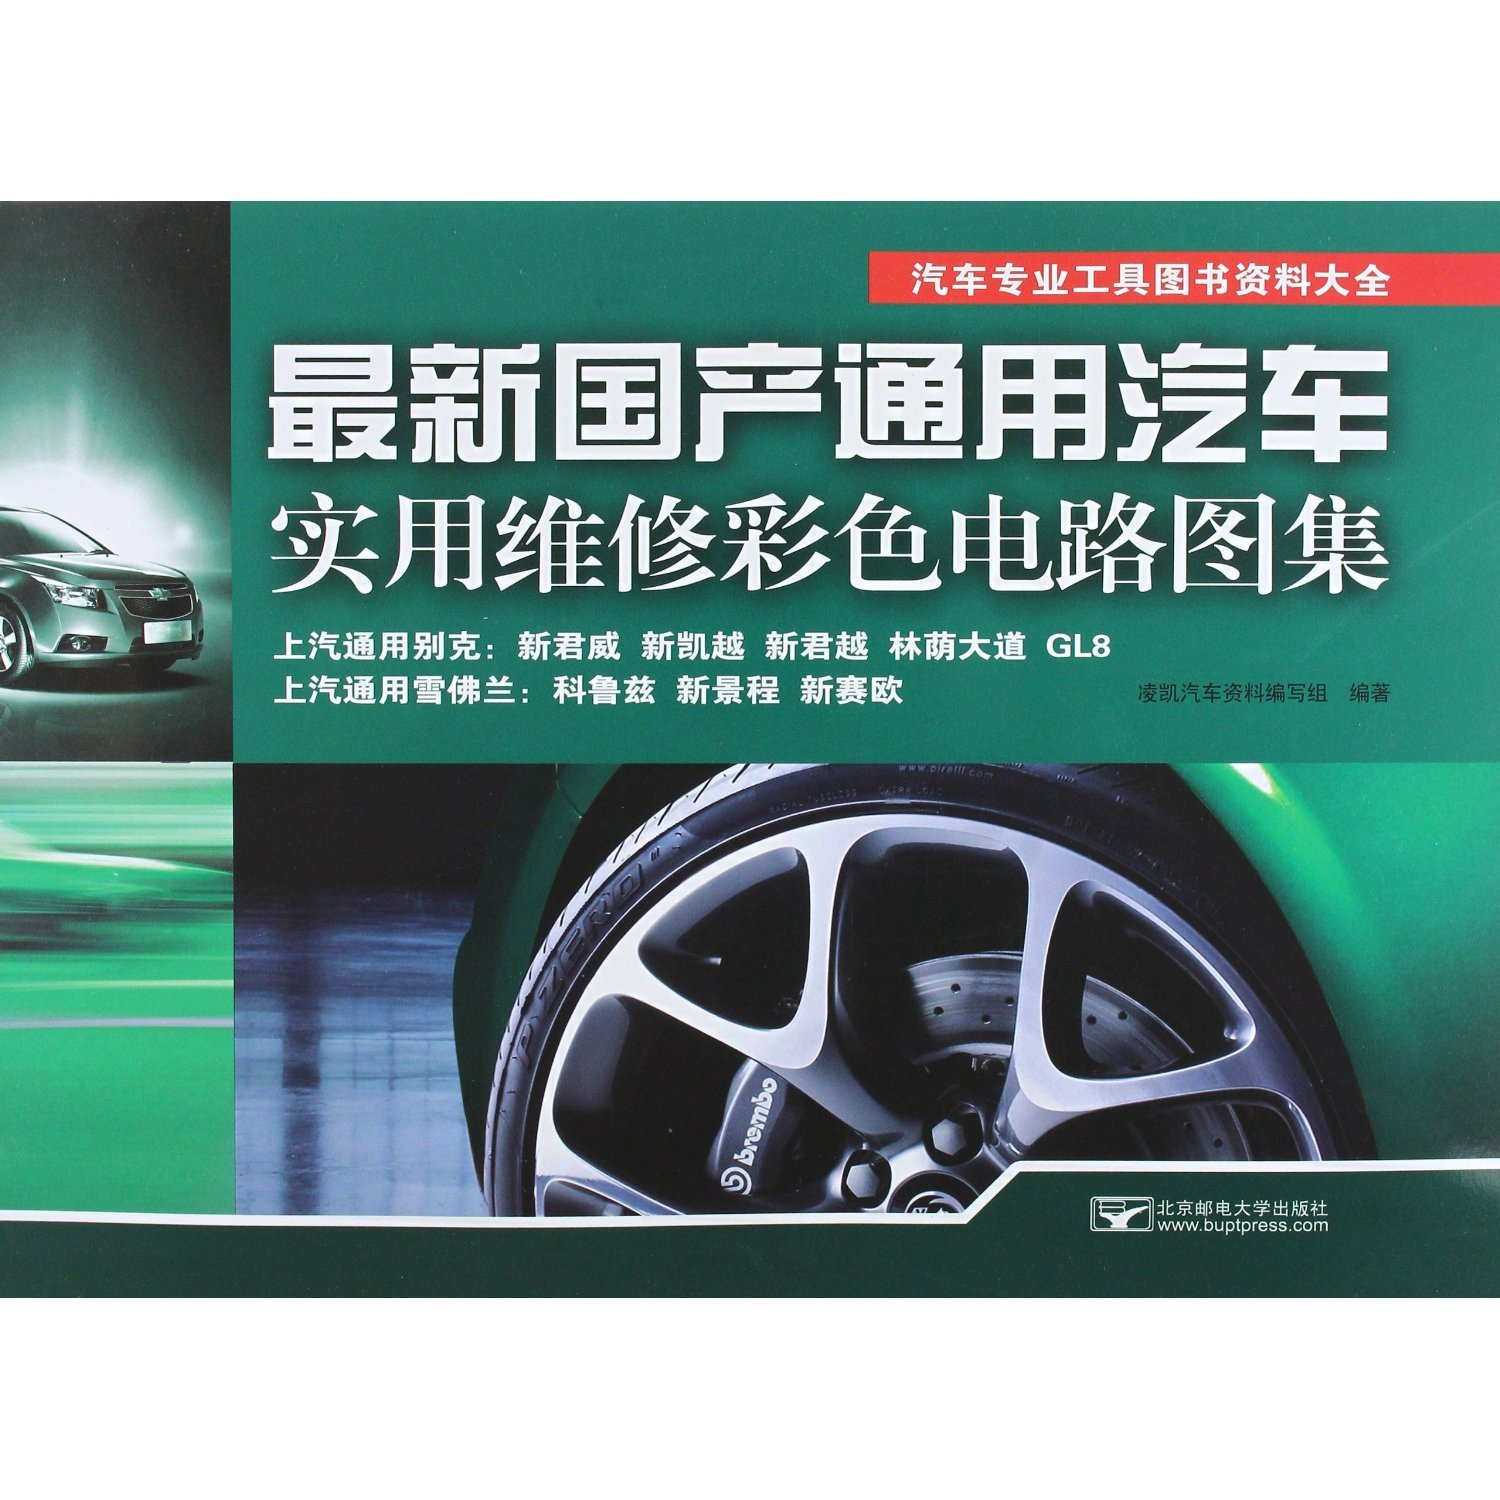 Download Useful Maintenance Color Circuit Collection for Latest China-made General Motors Automobiles (Chinese Edition) ebook